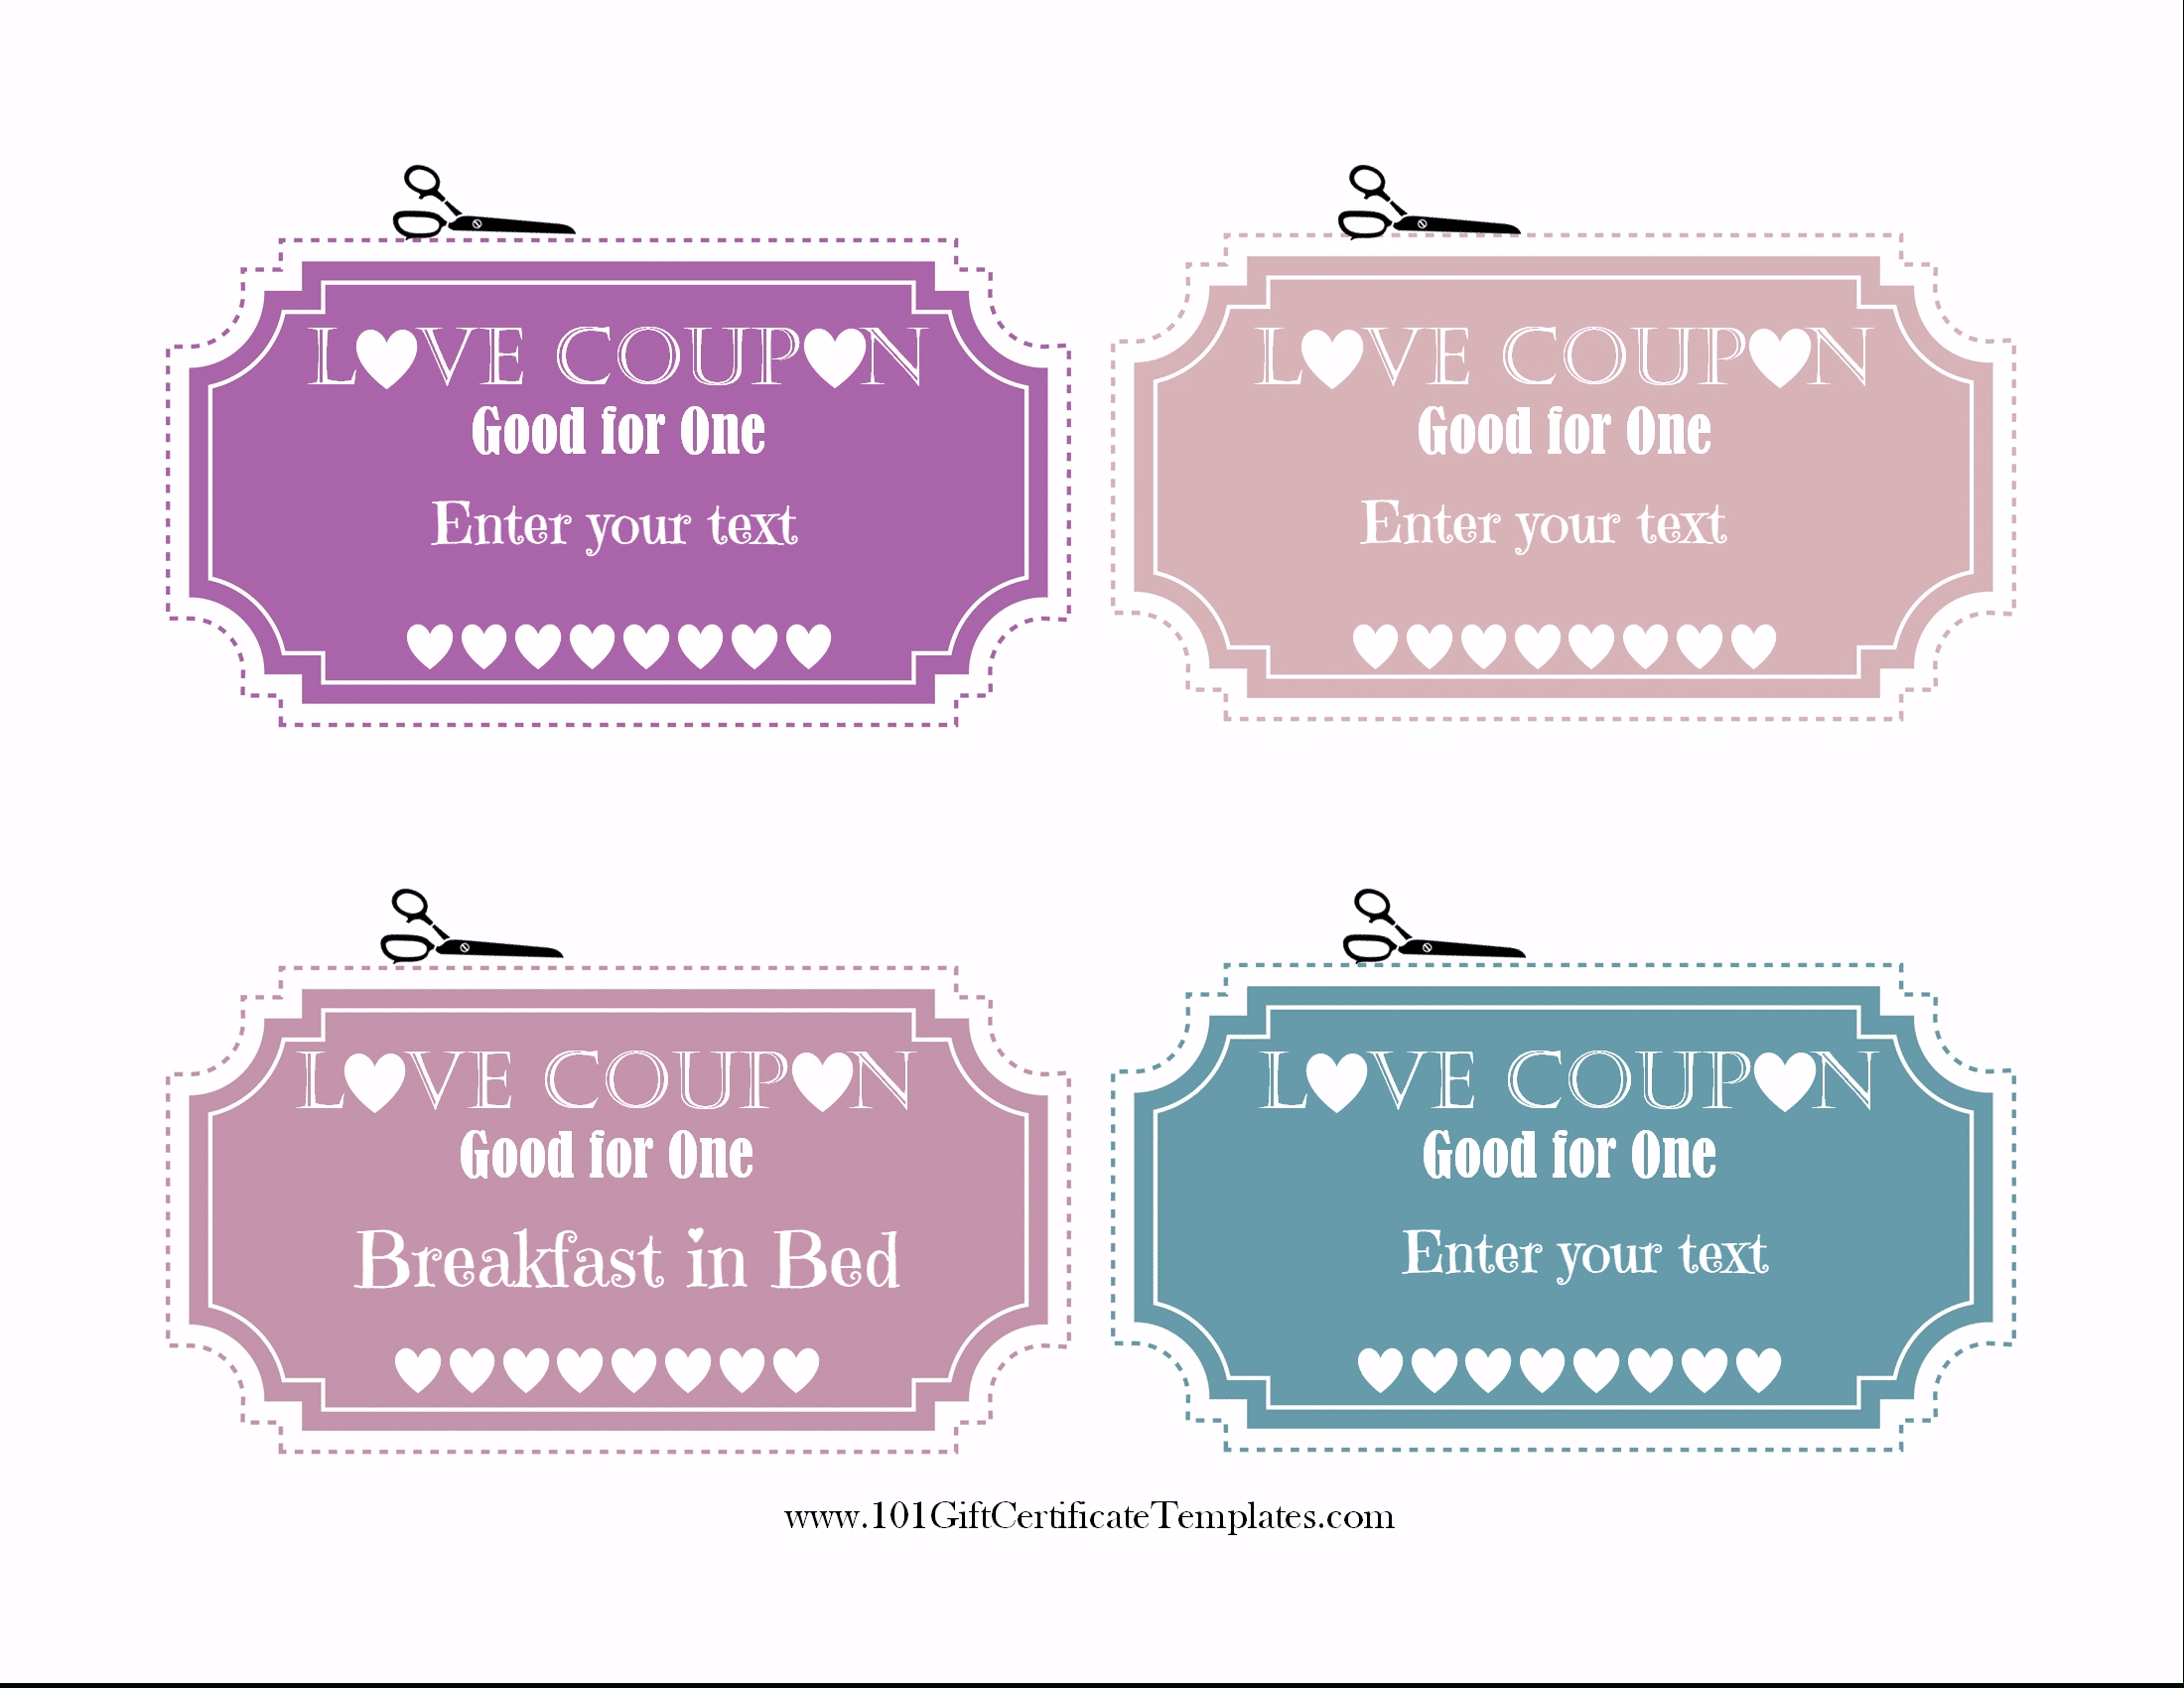 Love Coupons Templates Free - Karan.ald2014 Pertaining To Love Coupon Template For Word